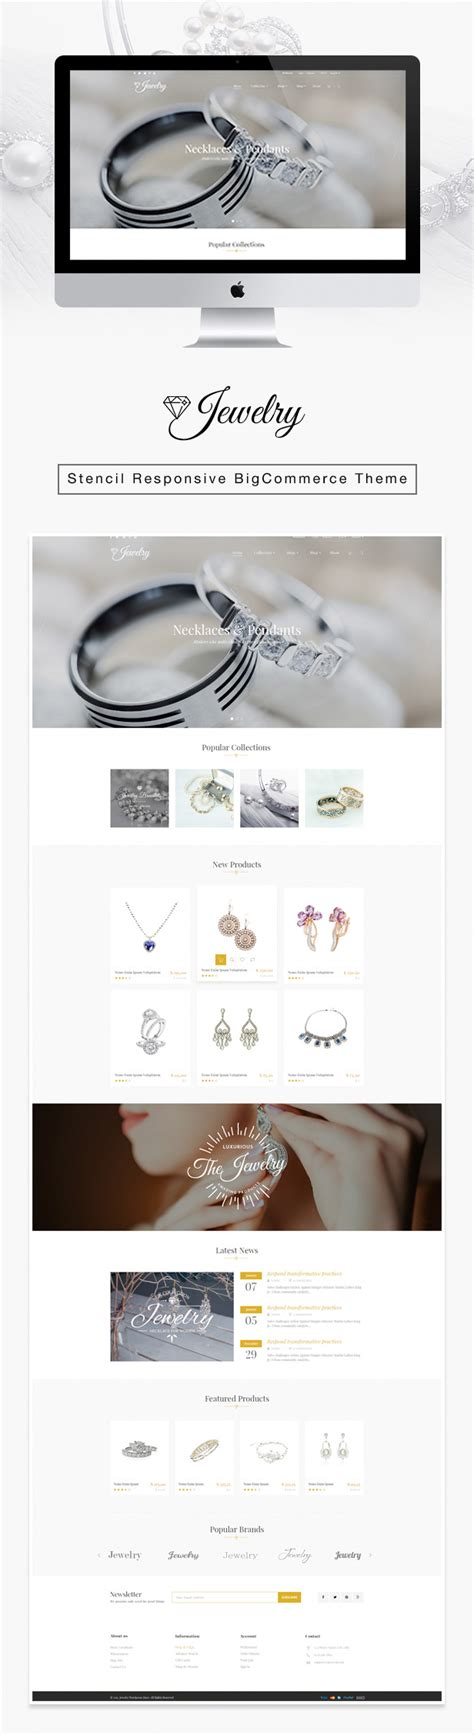 Jewelry Responsive Parallax Bigcommerce Theme Stencil Framework By Tvlgiao Bigcommerce Stencil Templates